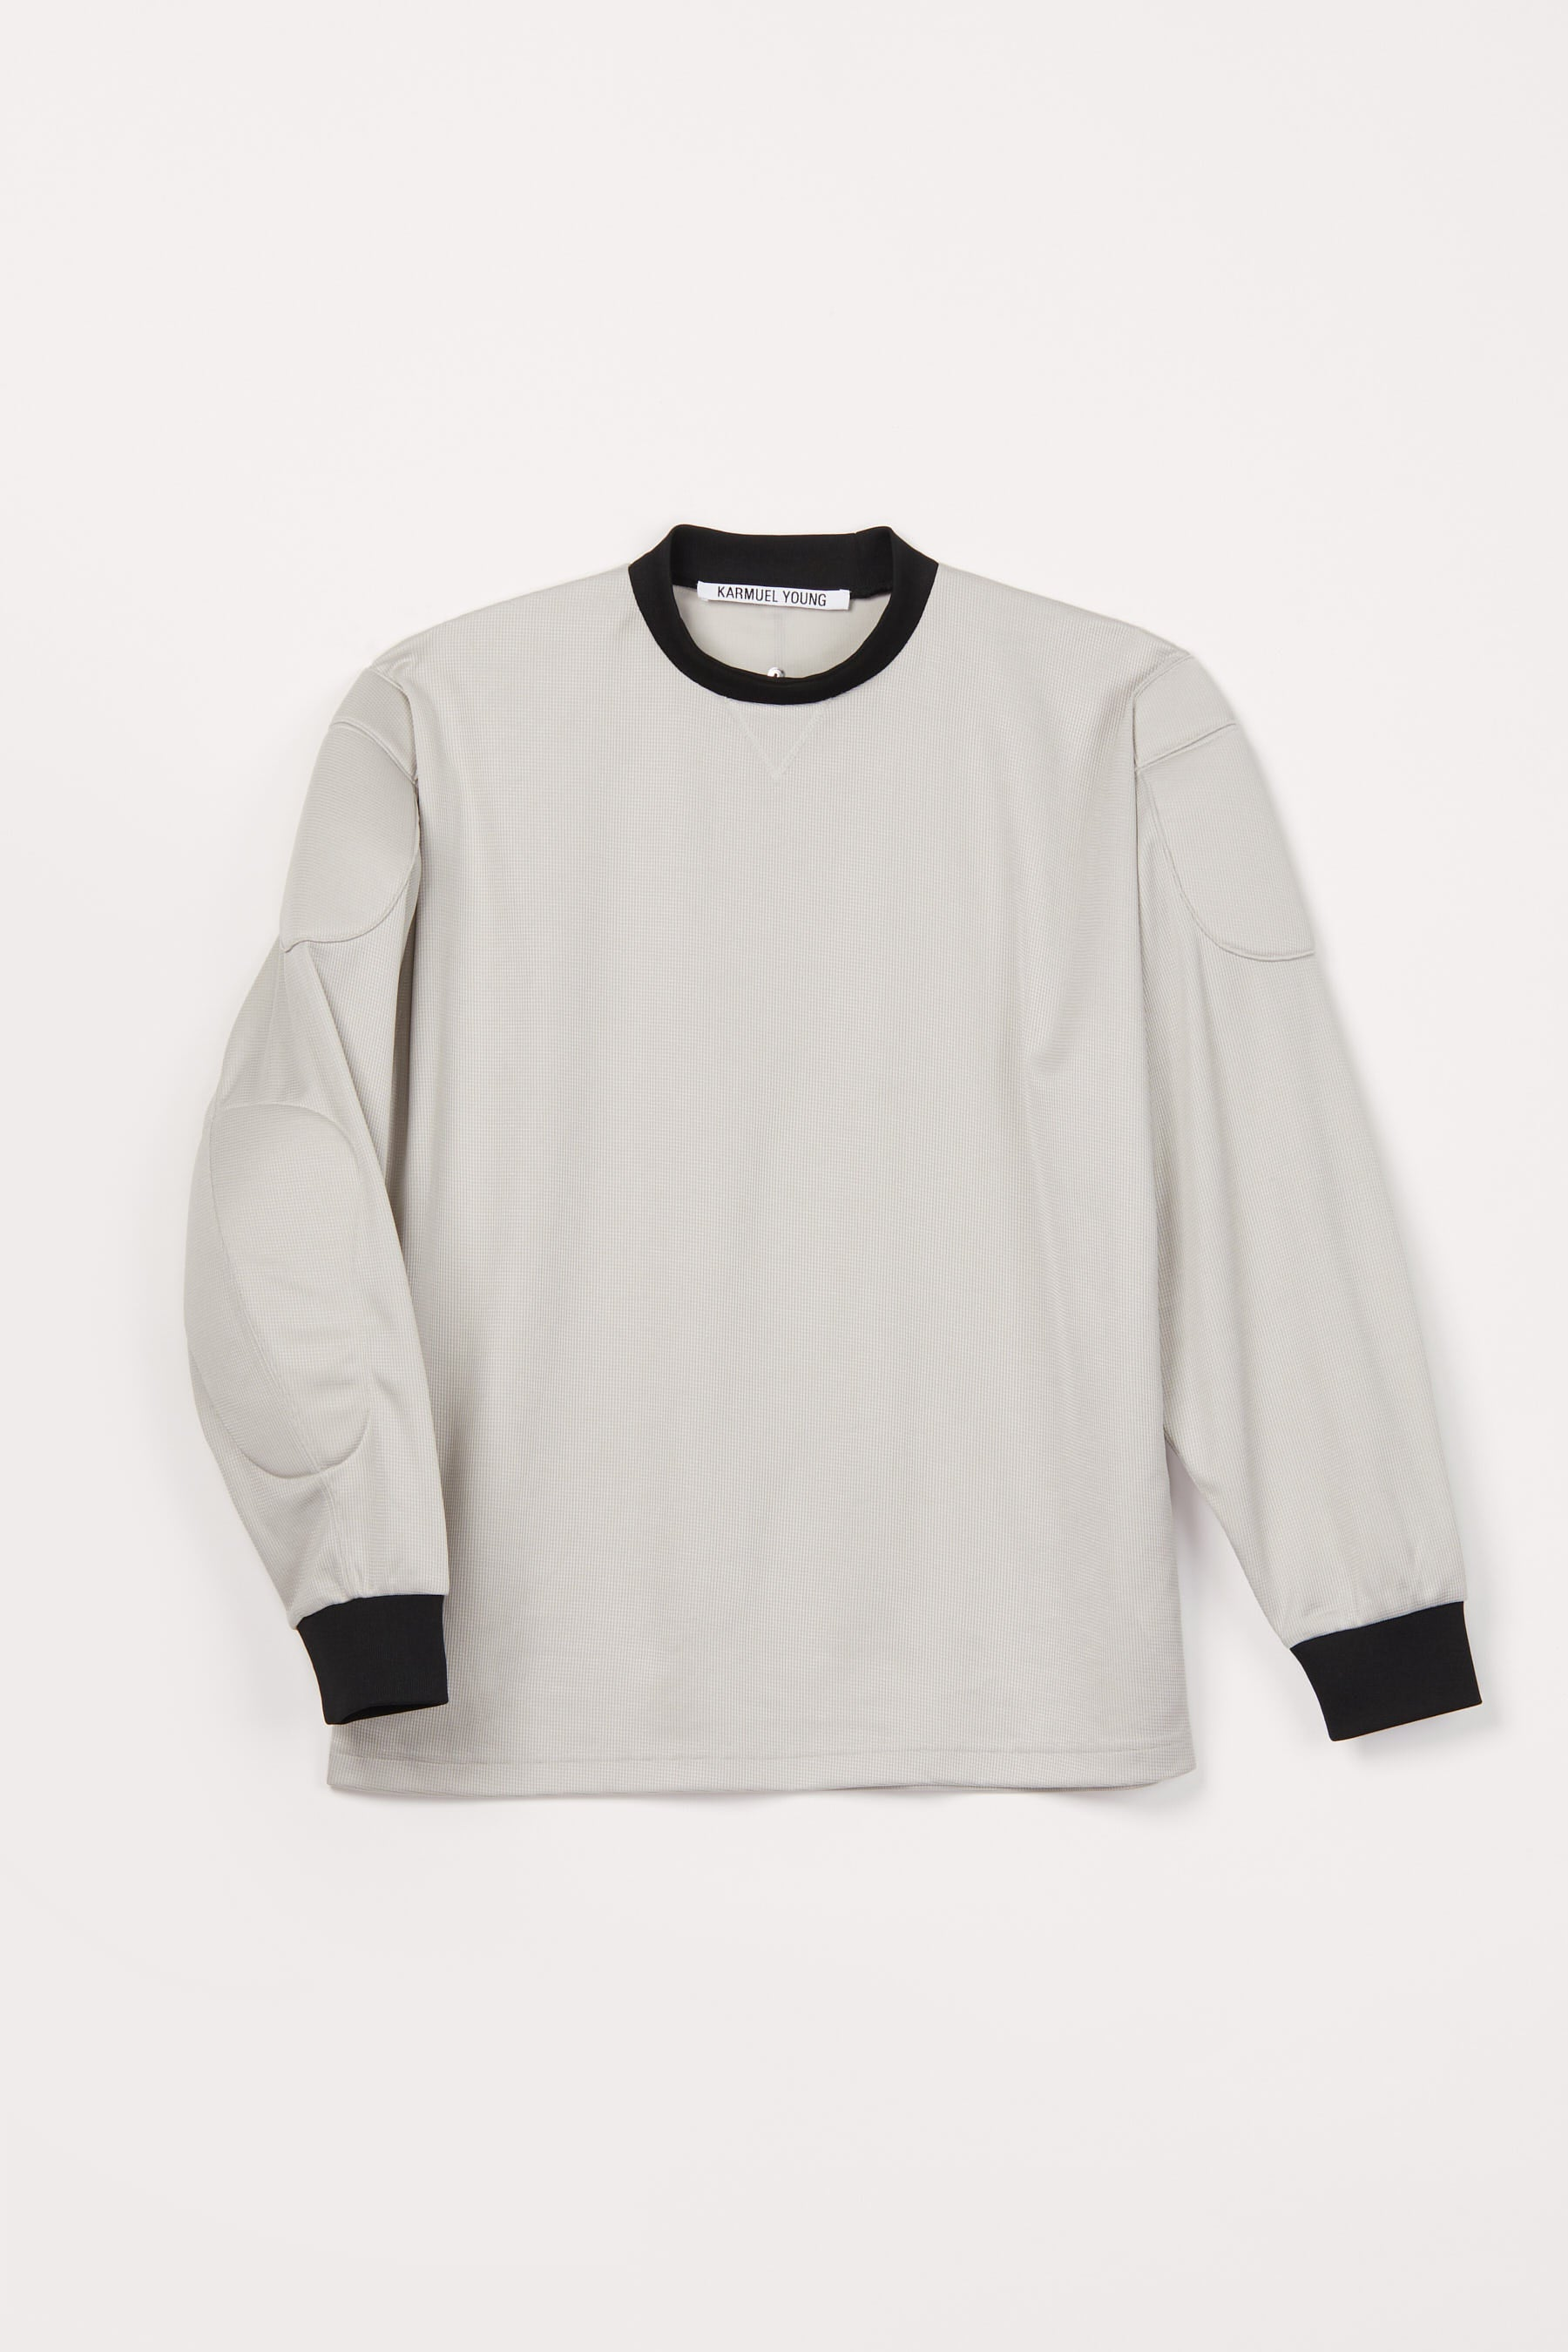 Grey Strong Arm Padded Sweatshirt